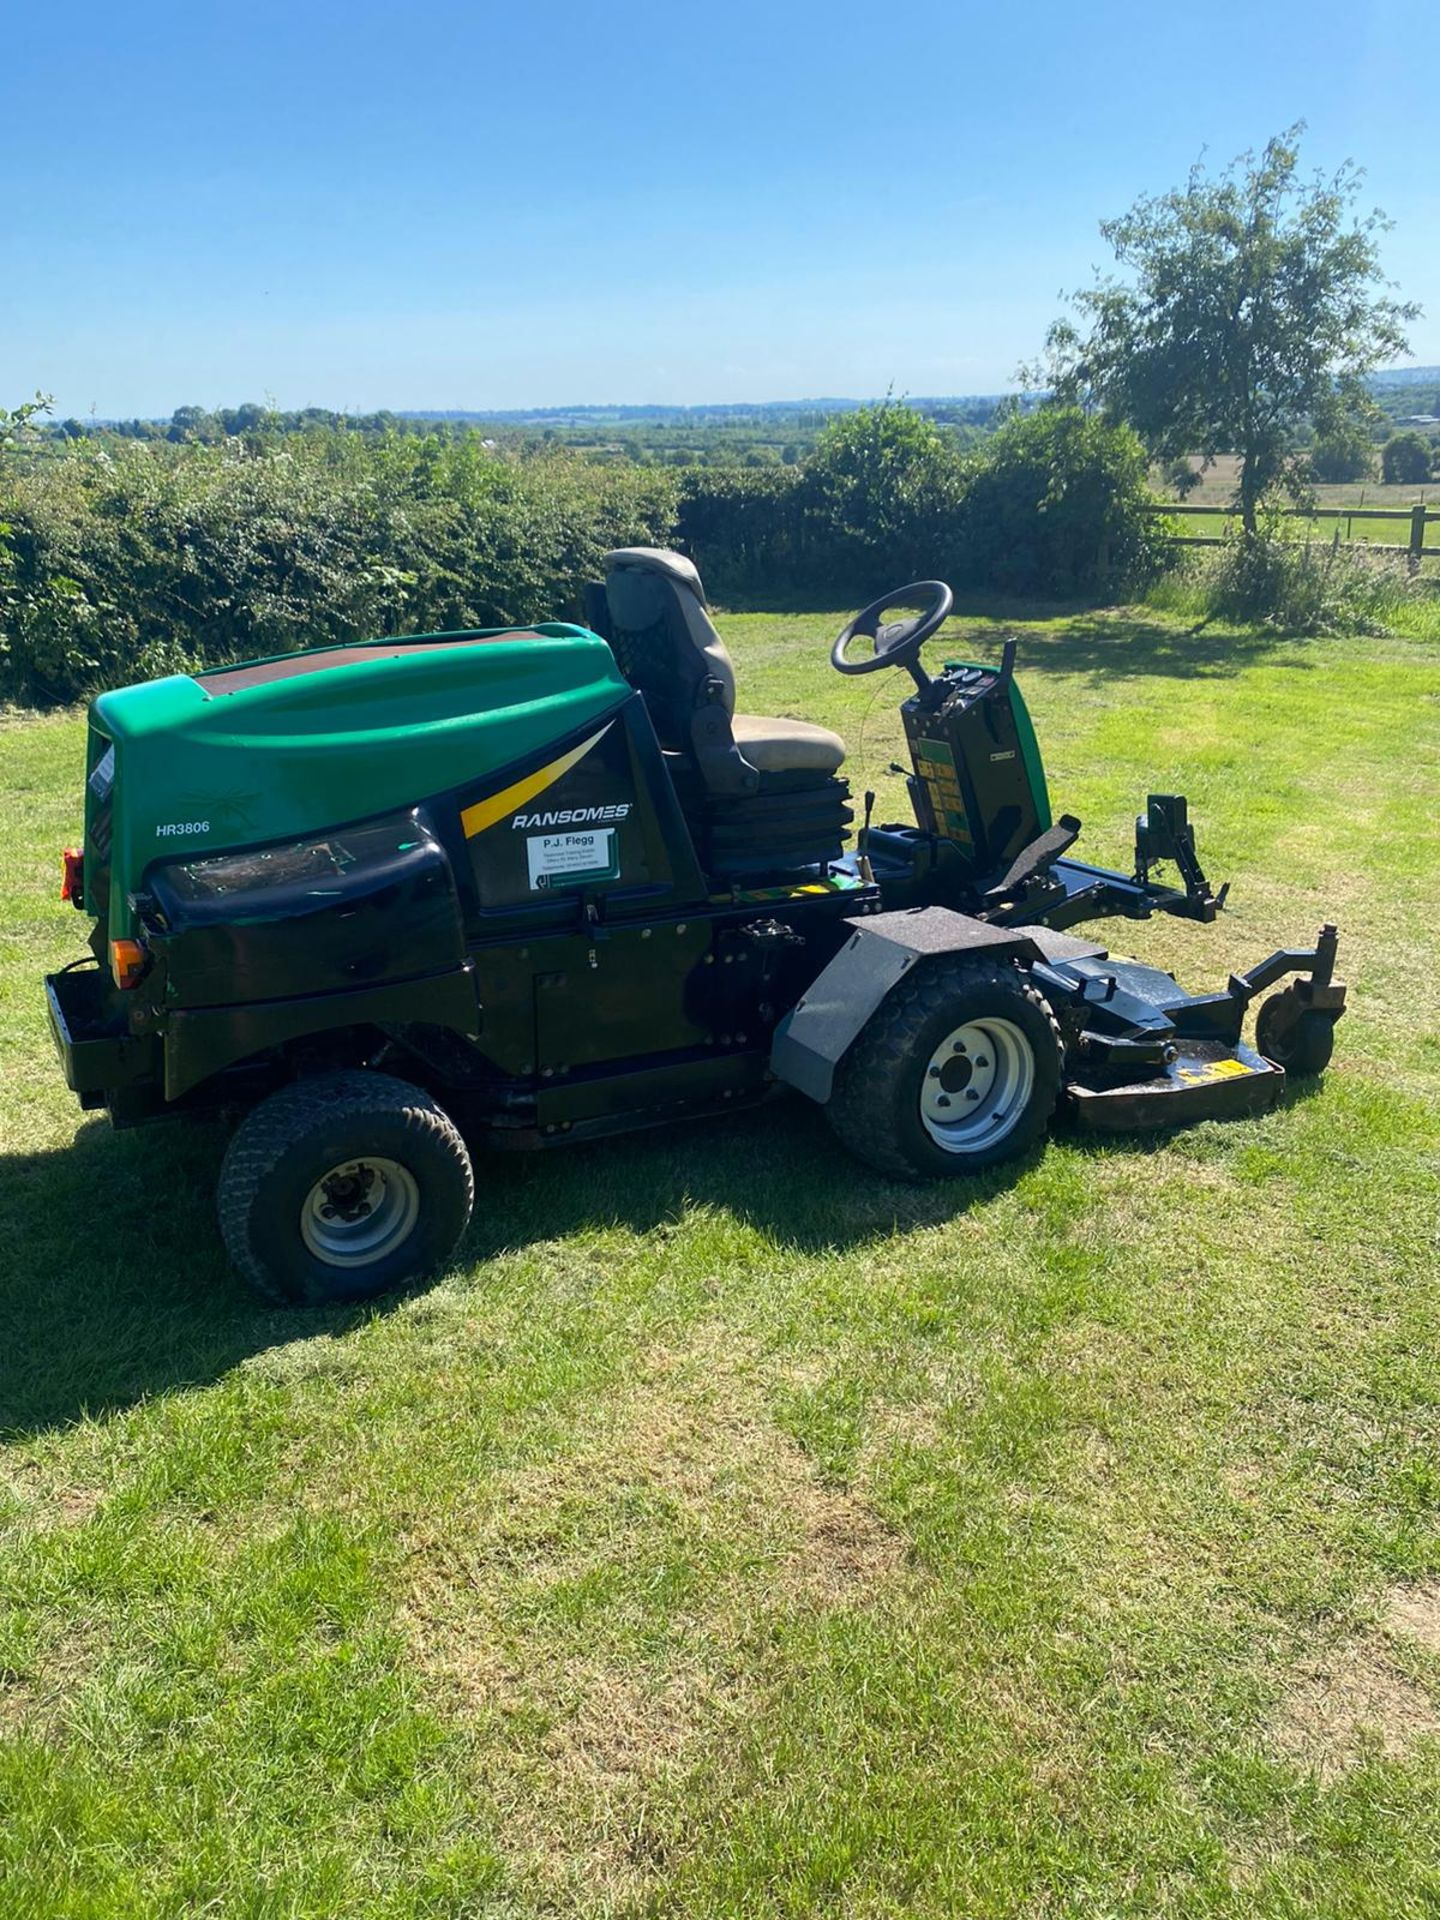 RANSOMES HR3806 OUT FRONT MOWER, RUNS, DRIVES AND CUTS, 38HP 3 CYLINDER KUBOTA ENGINE *PLUS VAT* - Image 4 of 6